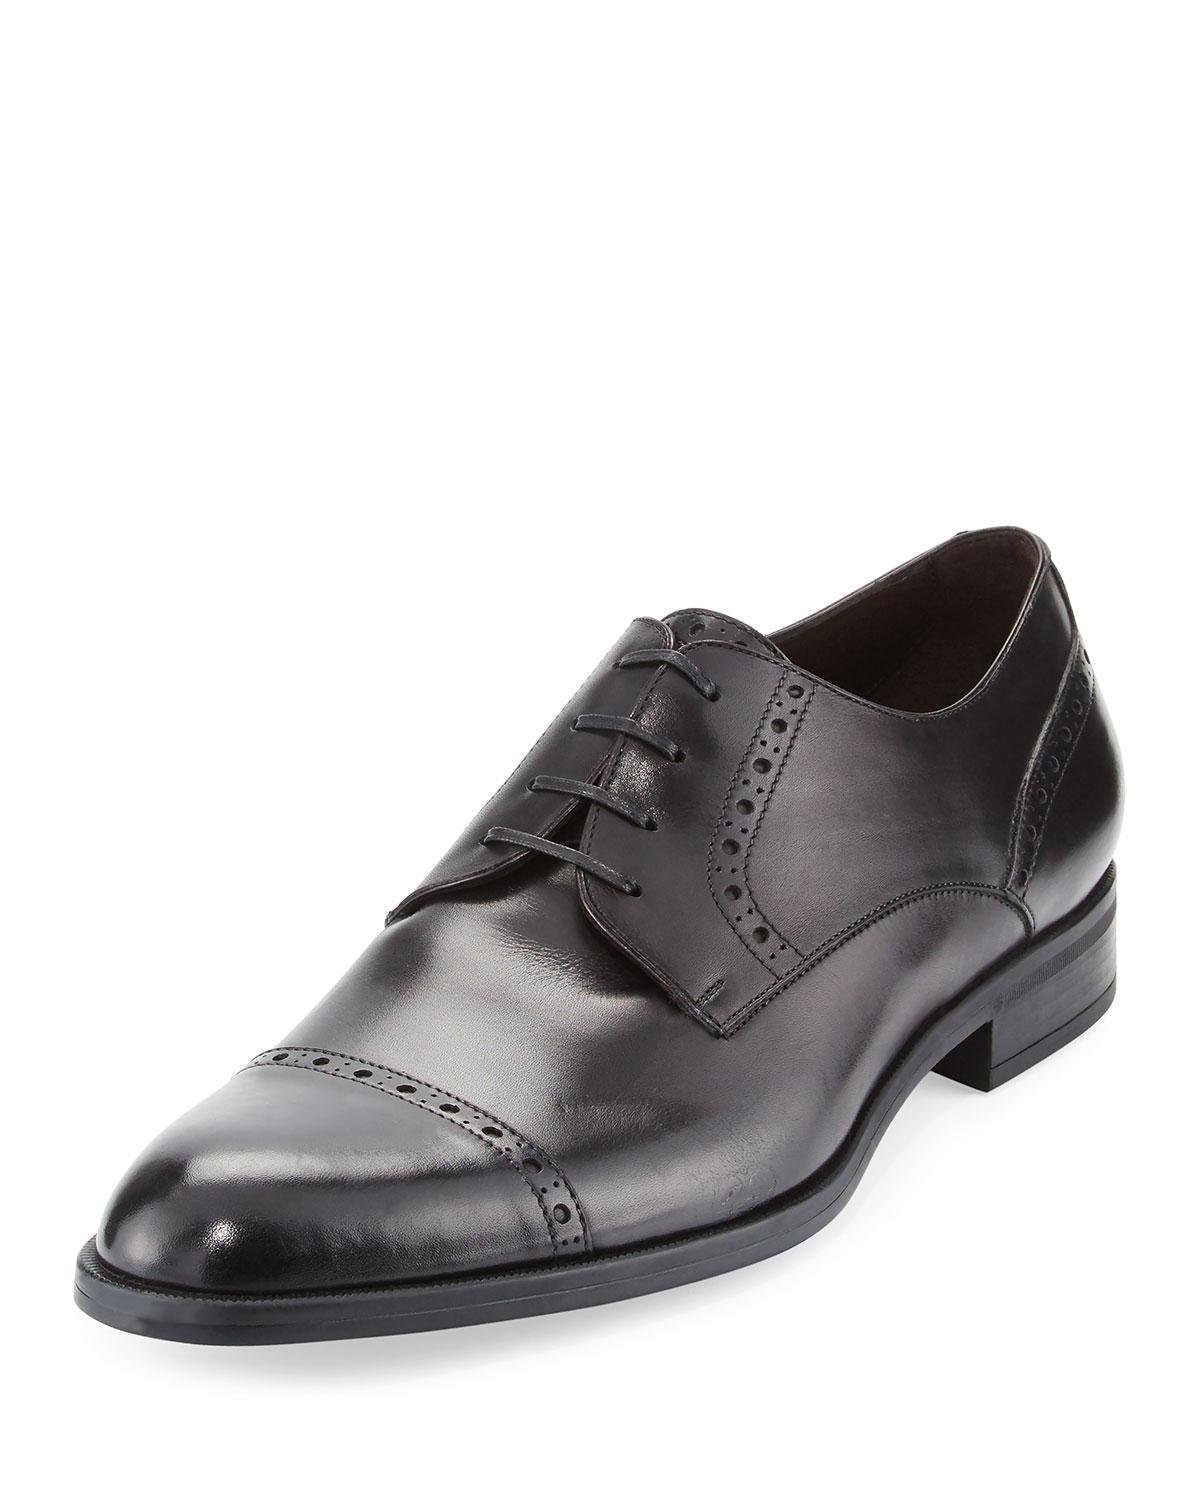 Milano Cap-toe Leather Oxford Shoes Ermenegildo Zegna iJDPCbgt